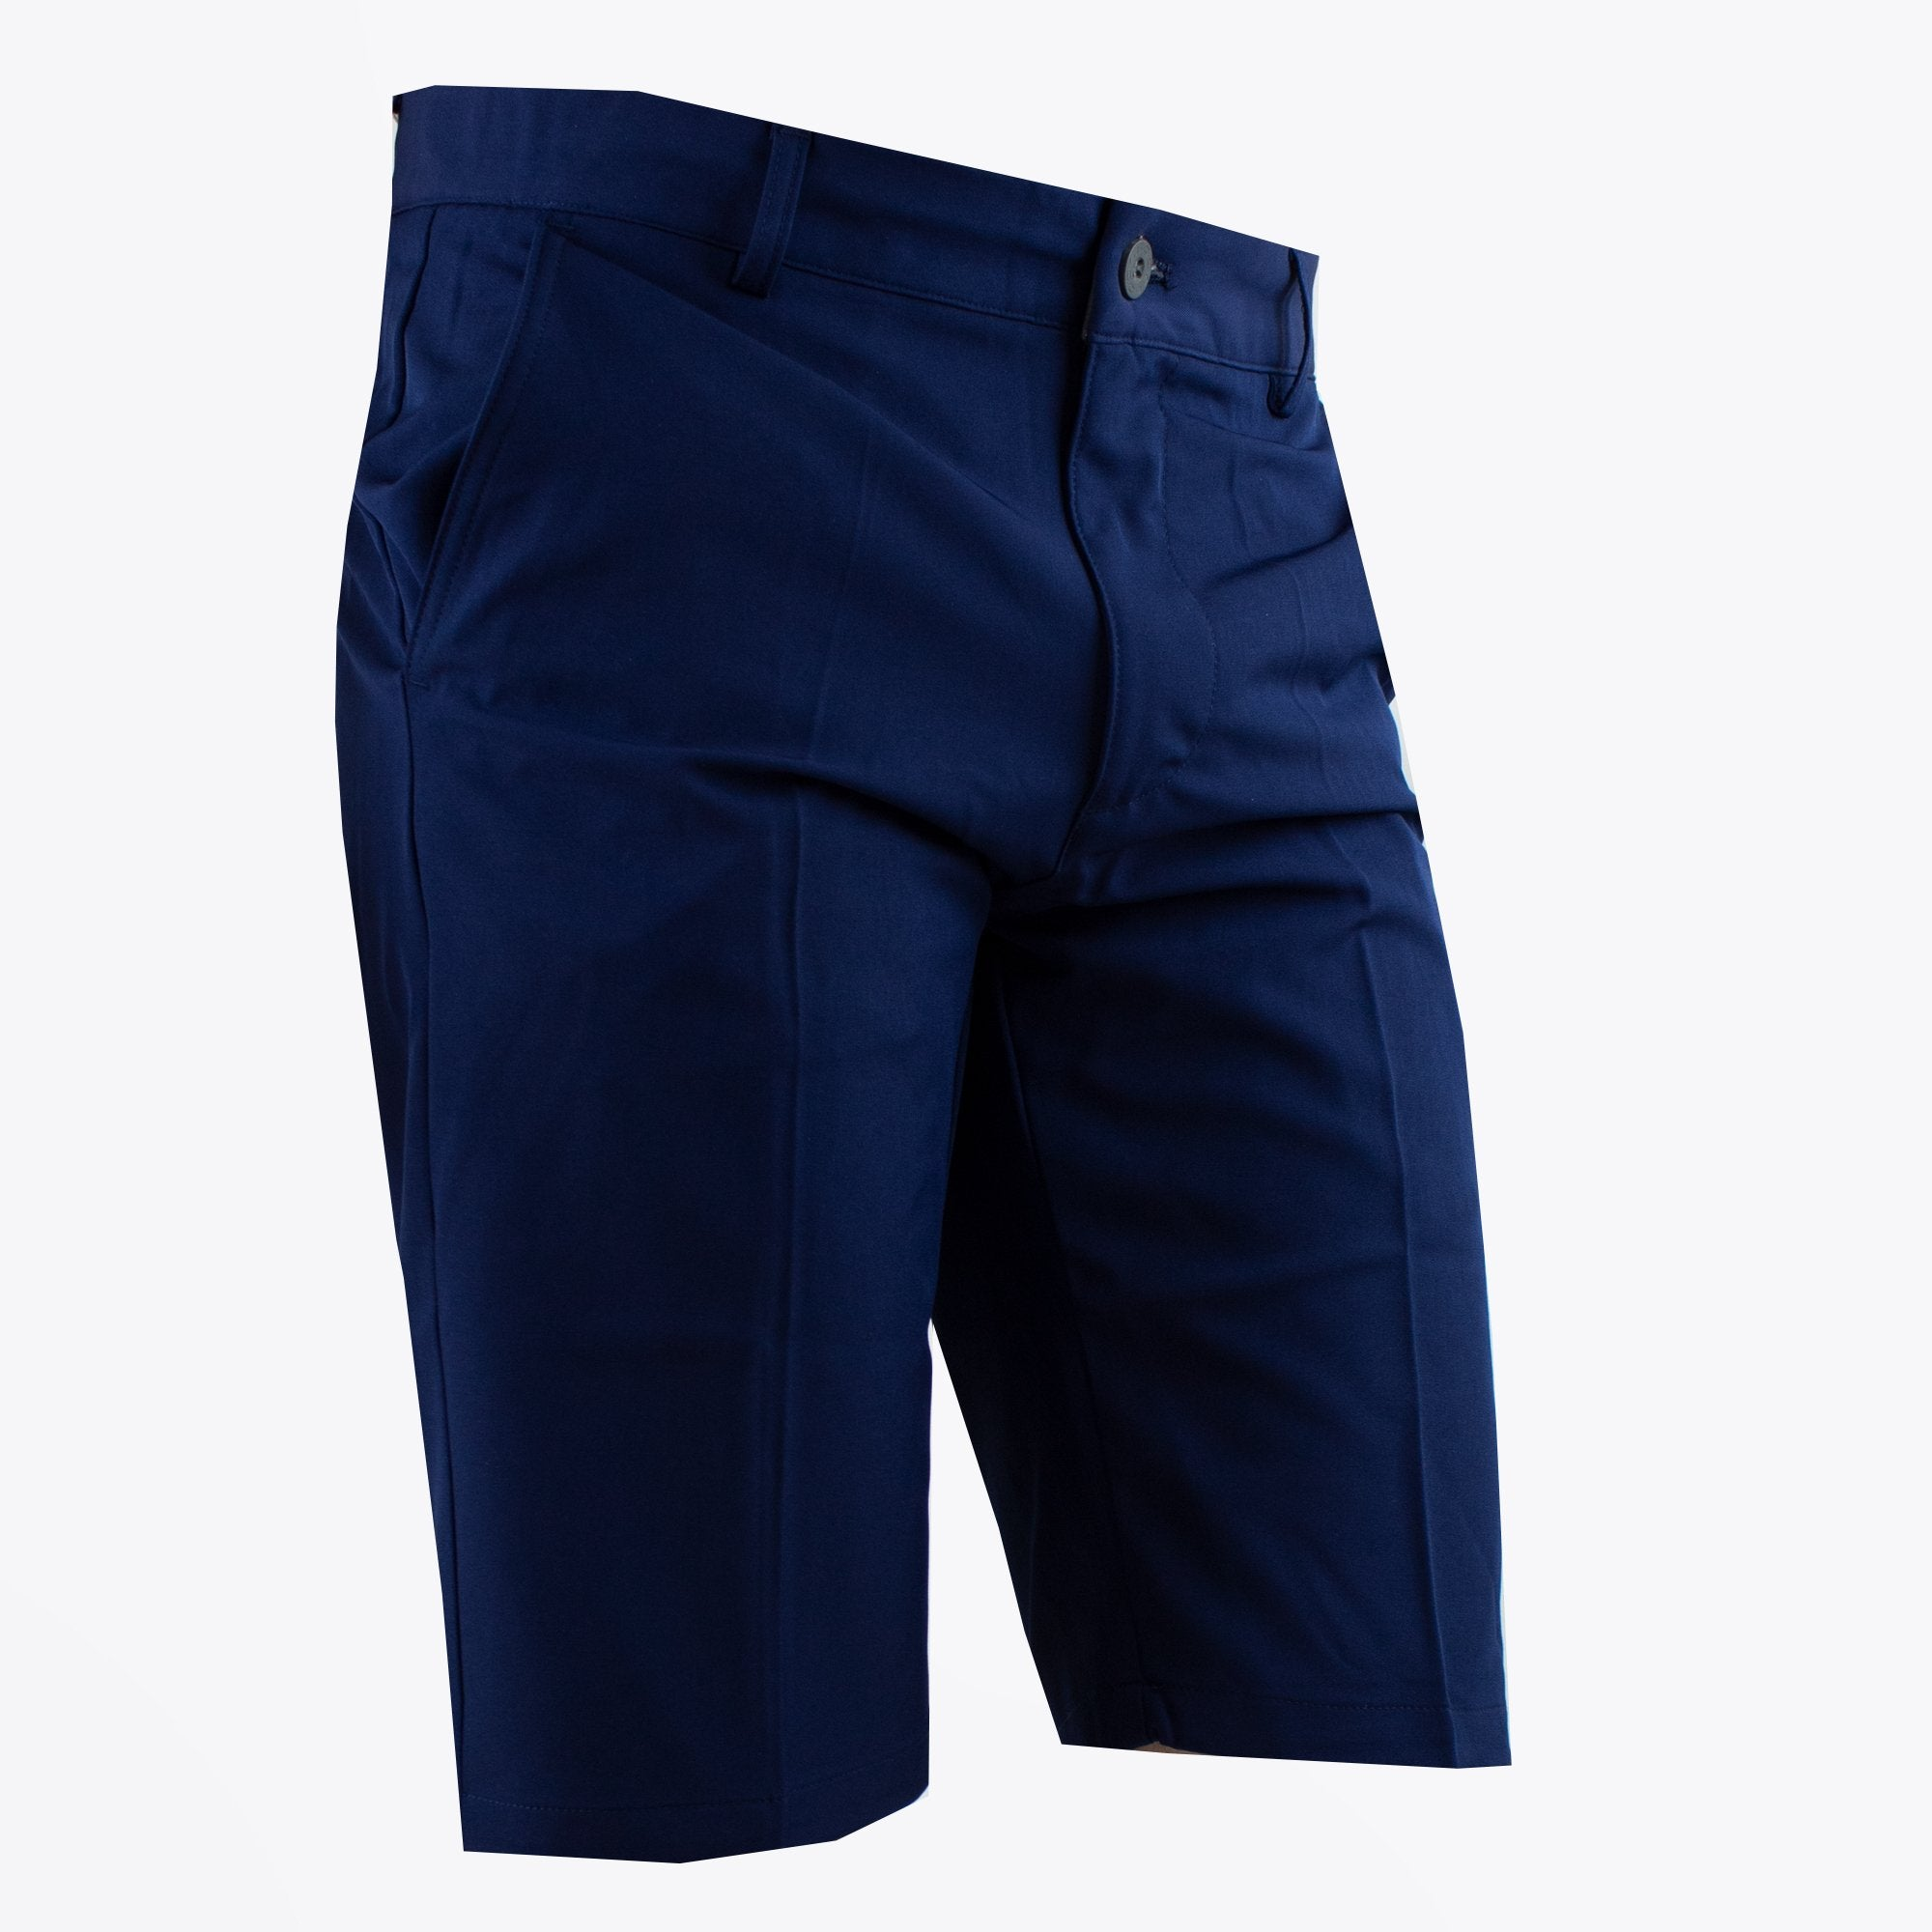 Druids Golf - Mens Clima Shorts (Navy)